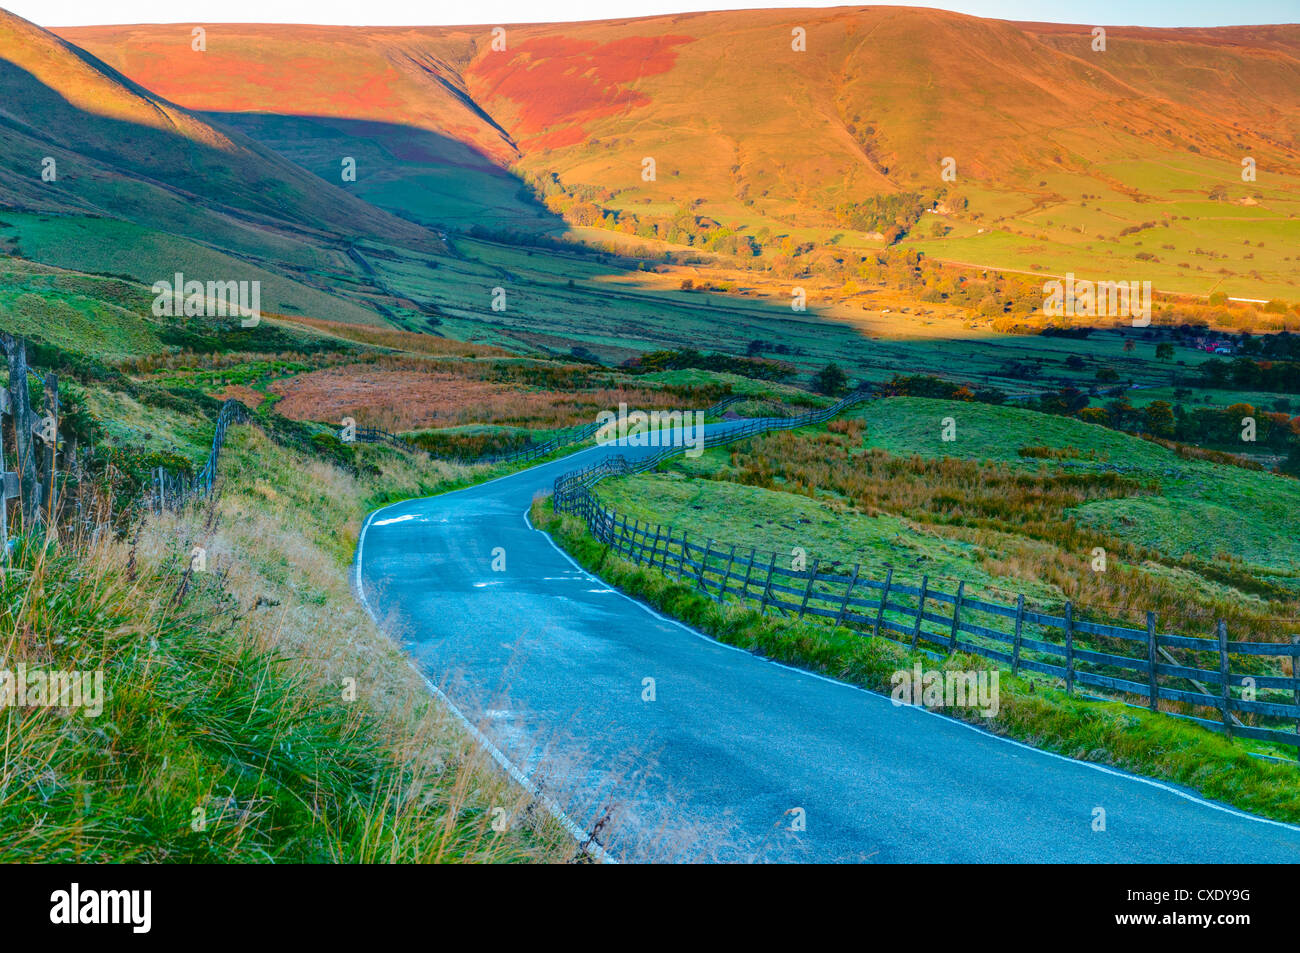 Vale of Edale, Peak District National Park, Derbyshire, England - Stock Image